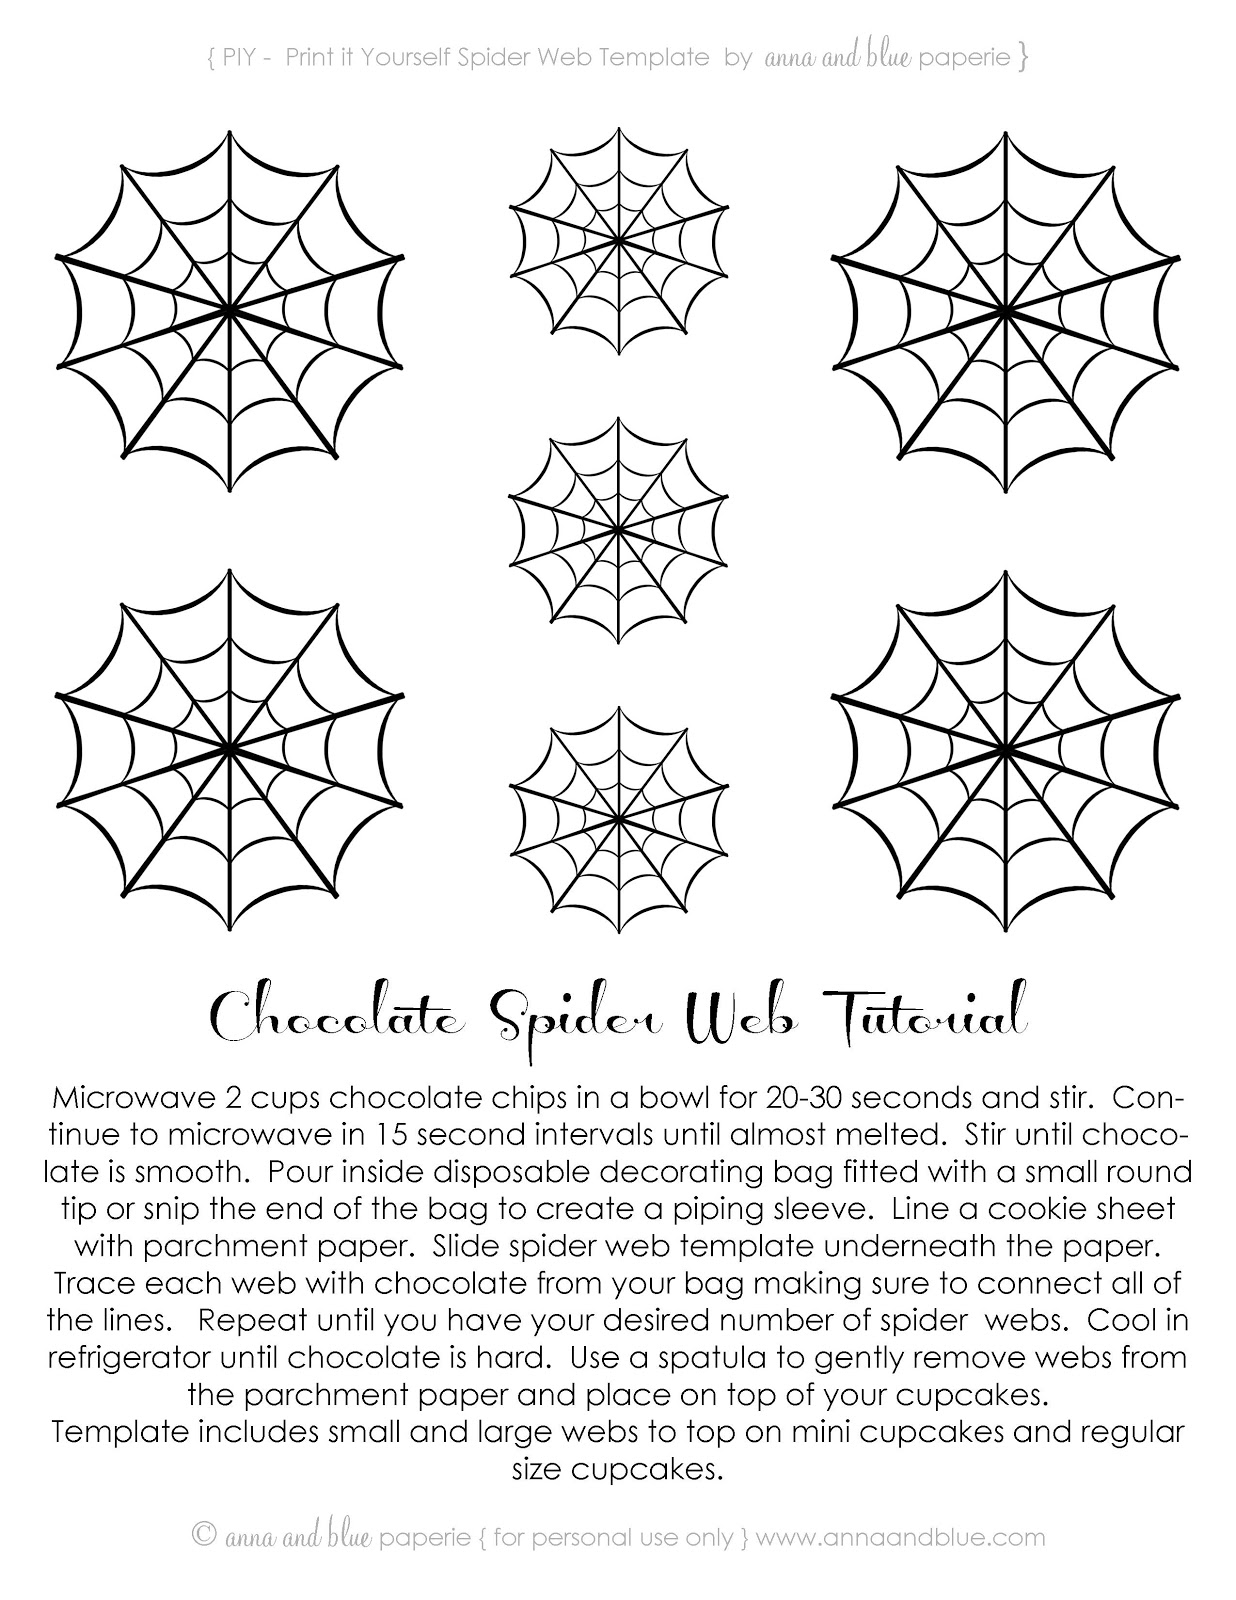 Anna And Blue Paperie Free Printable Spooktacular Spider Webs